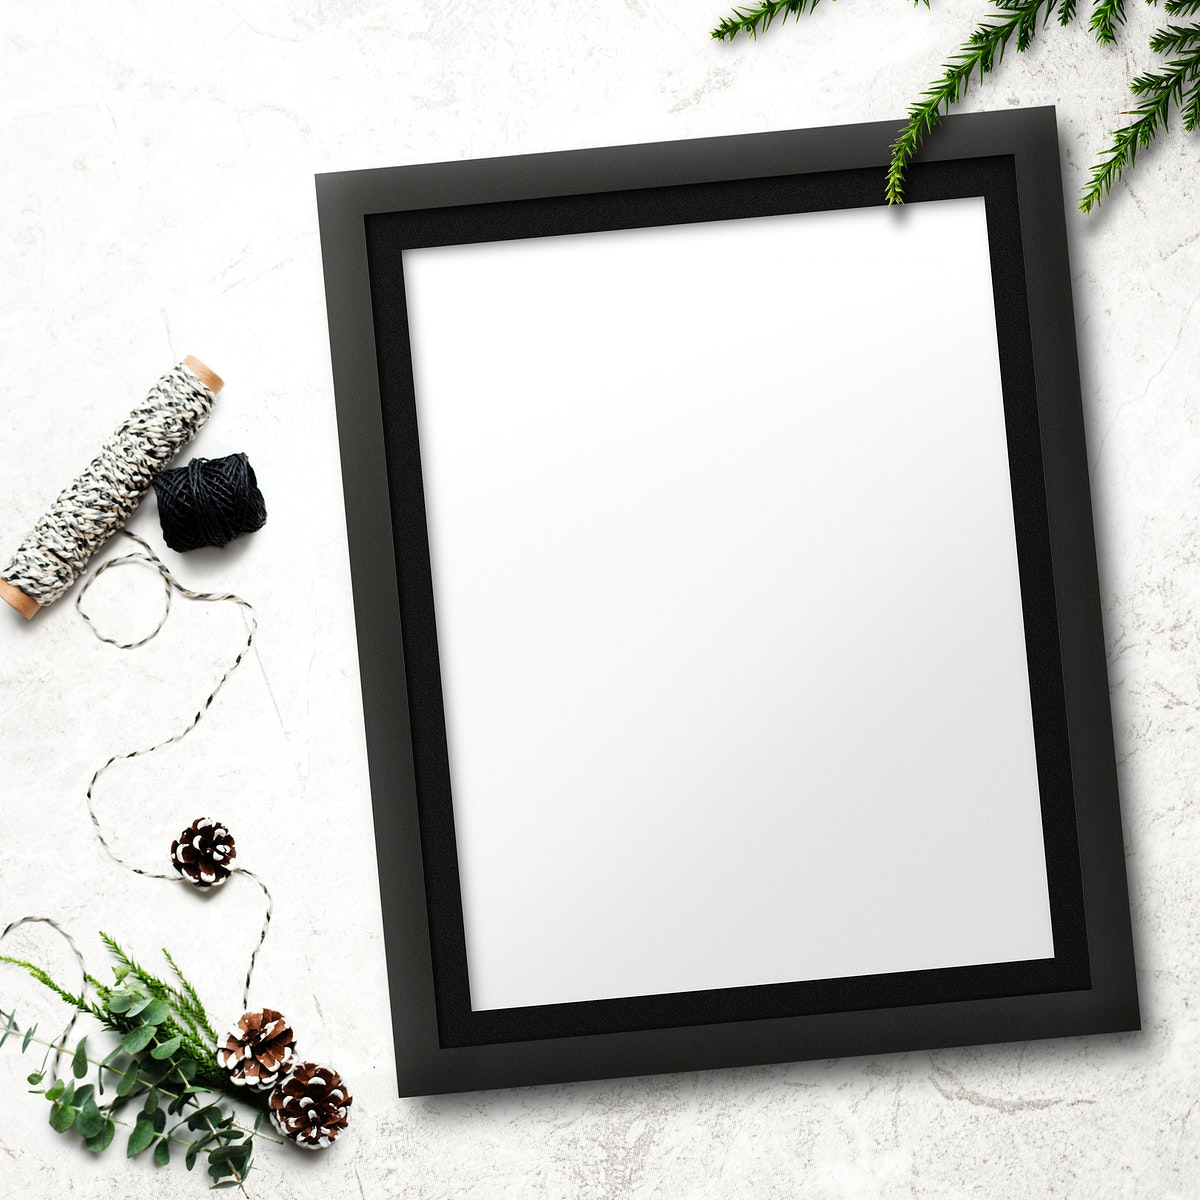 Frame mockup with Christmas decorations on stained background